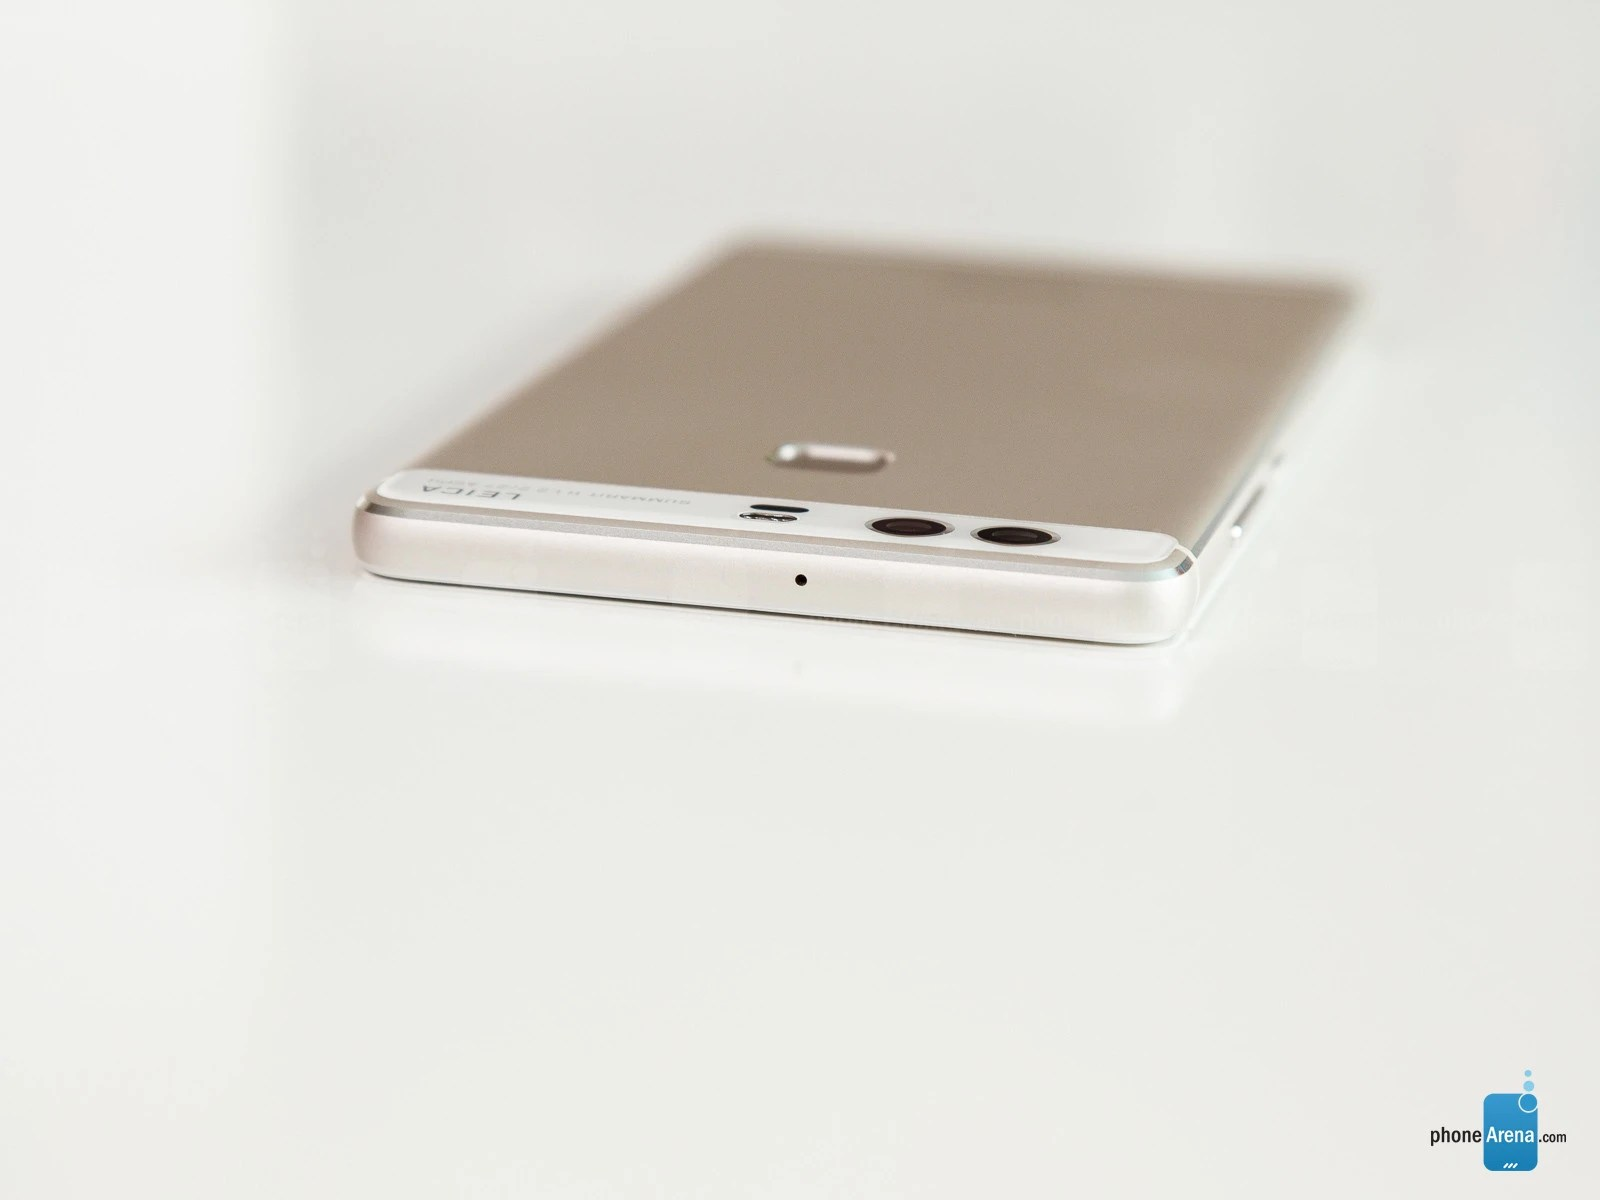 Over 12 Million Units Of The Huawei P9 And P9 Plus Have